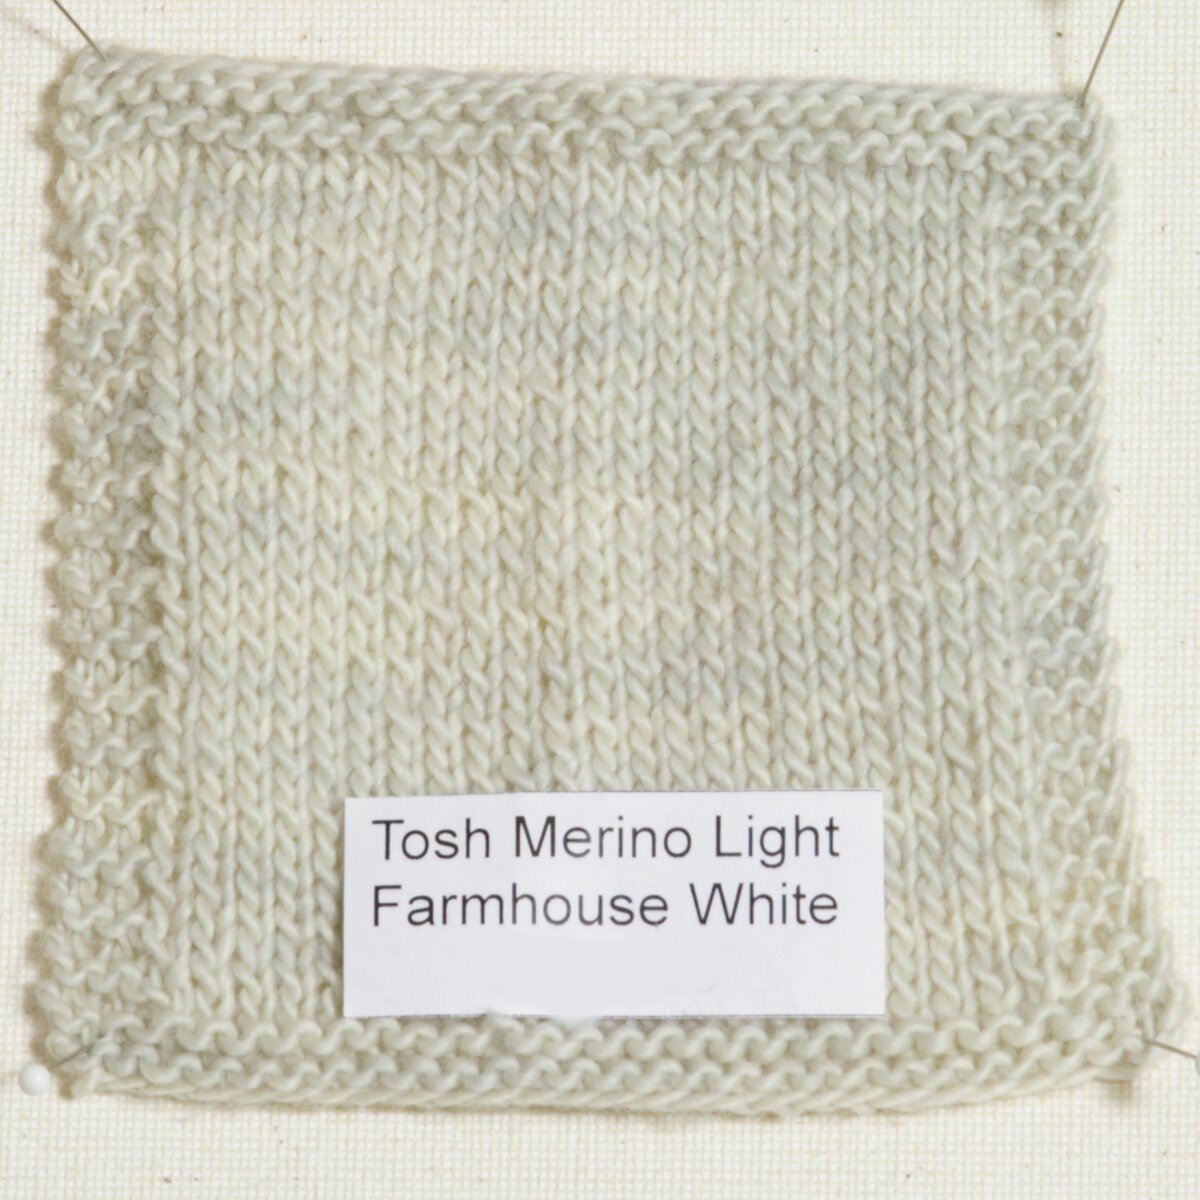 madelinetosh tosh merino light yarn farmhouse white detailed. Black Bedroom Furniture Sets. Home Design Ideas